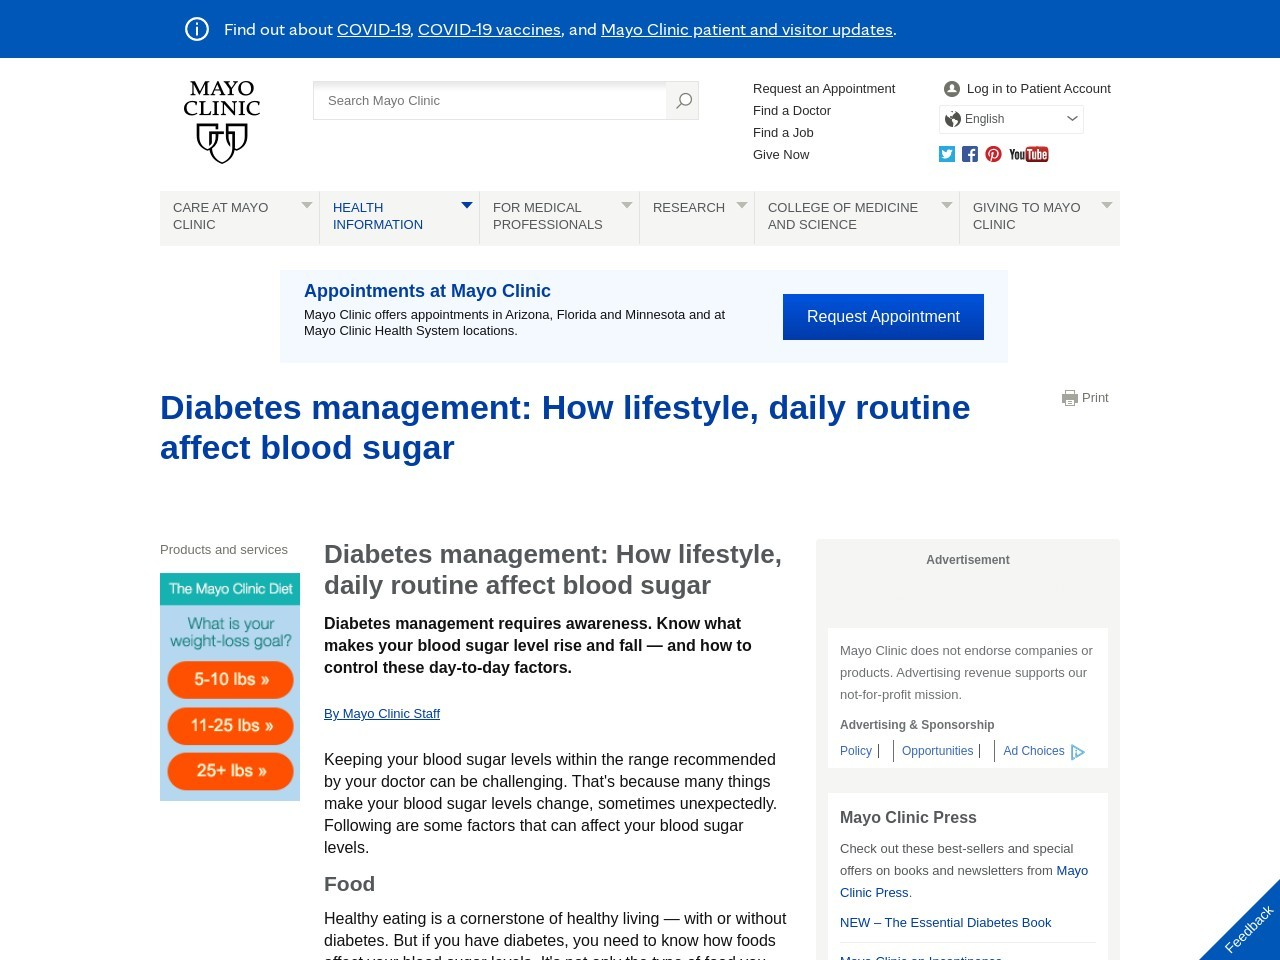 Diabetes is a big deal; lifestyle changes help